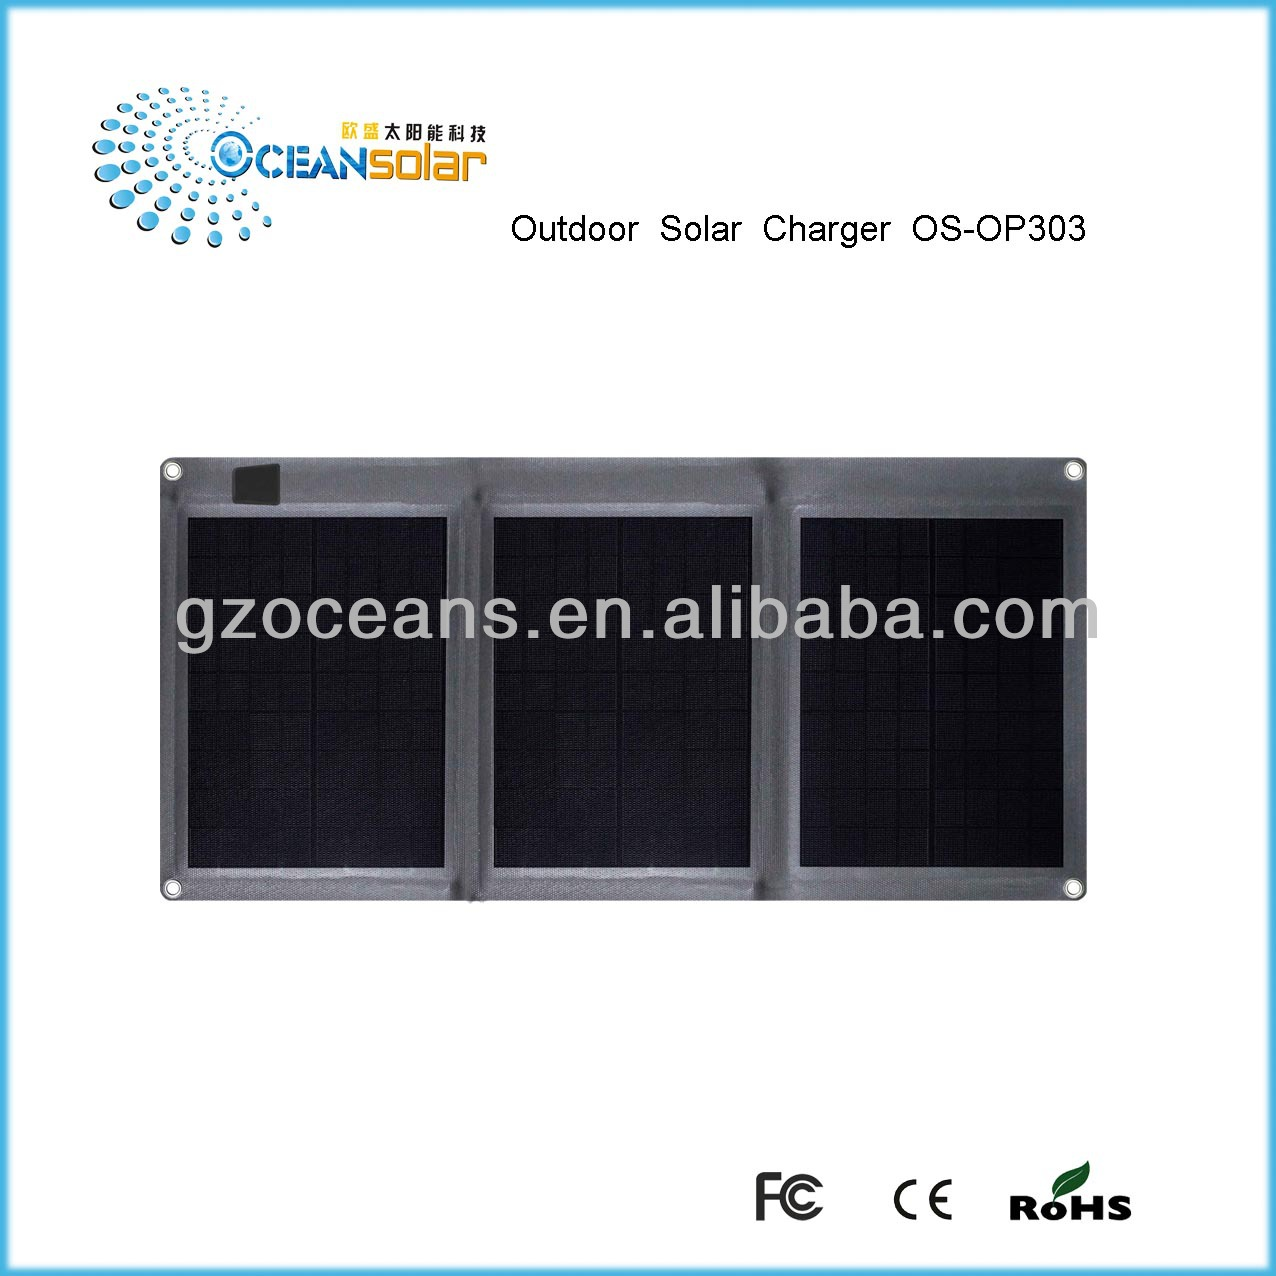 12V battery charger solar panel outdoor solar charger 30W best price for Africa market